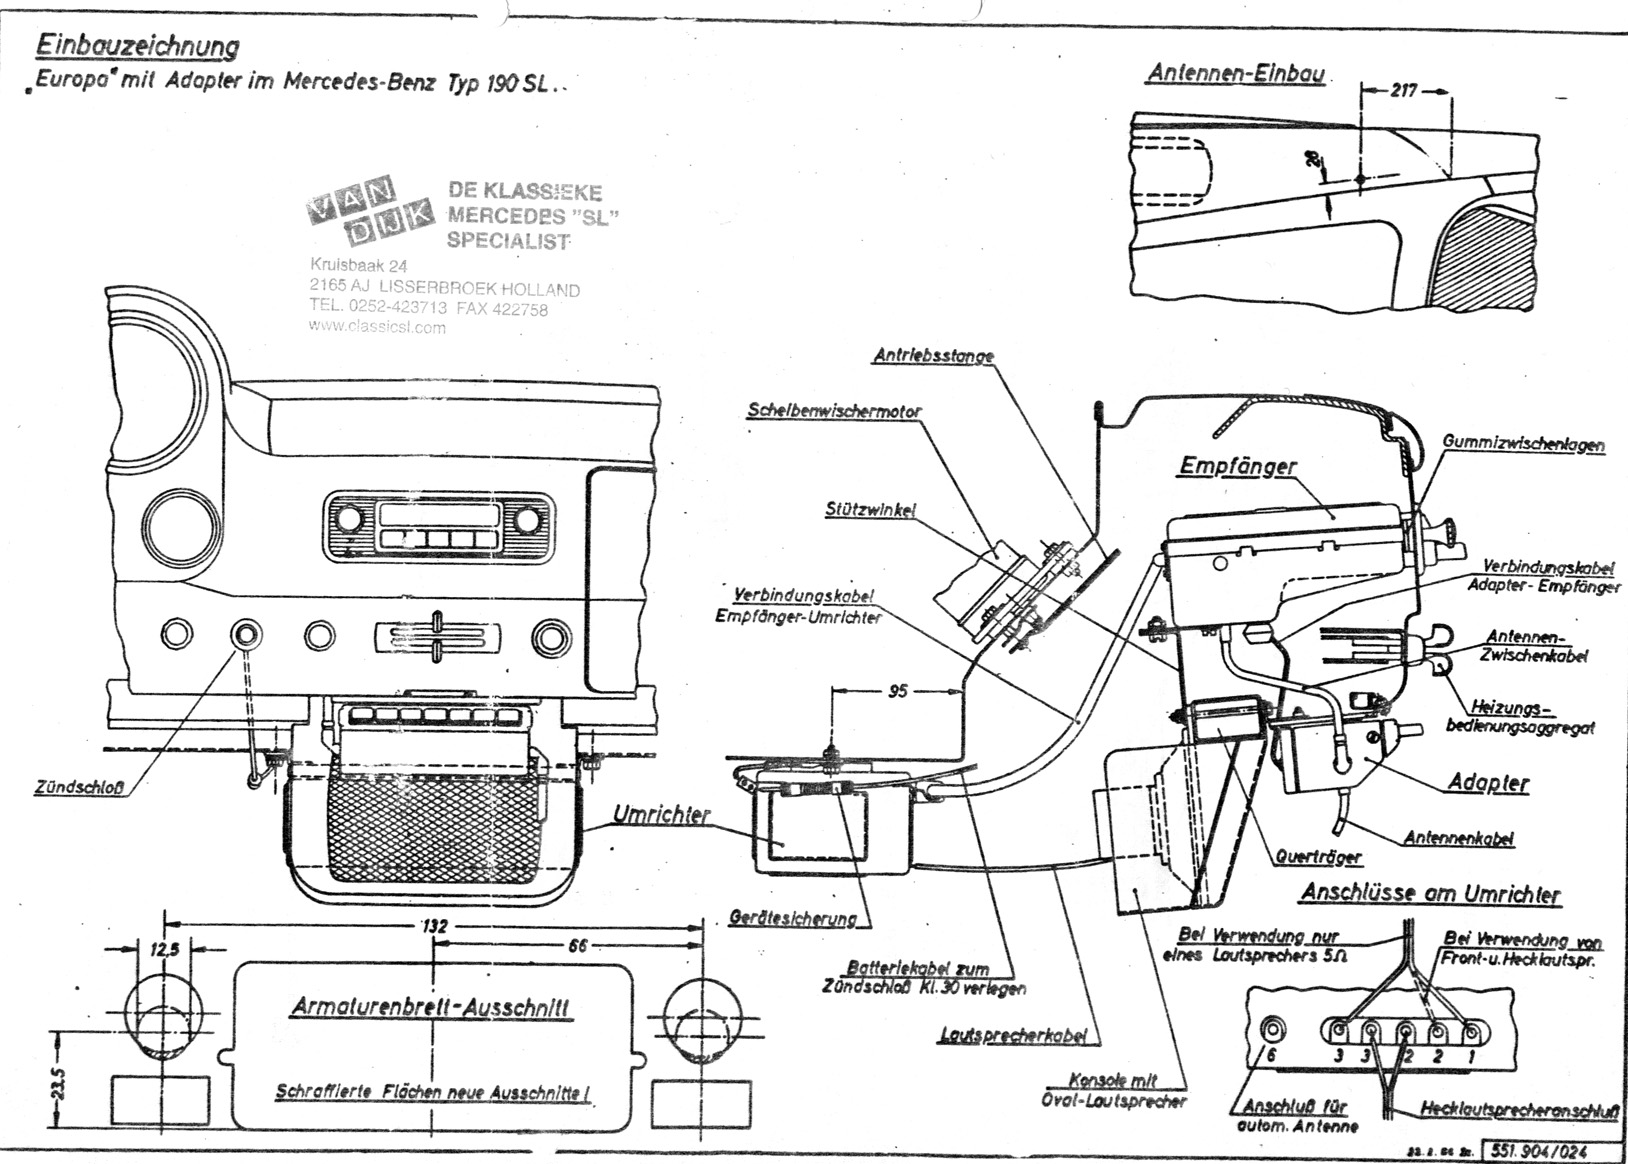 96 nissan maxima radio wiring diagram jvc car stereo color benz engine best library becker europa technical illustration